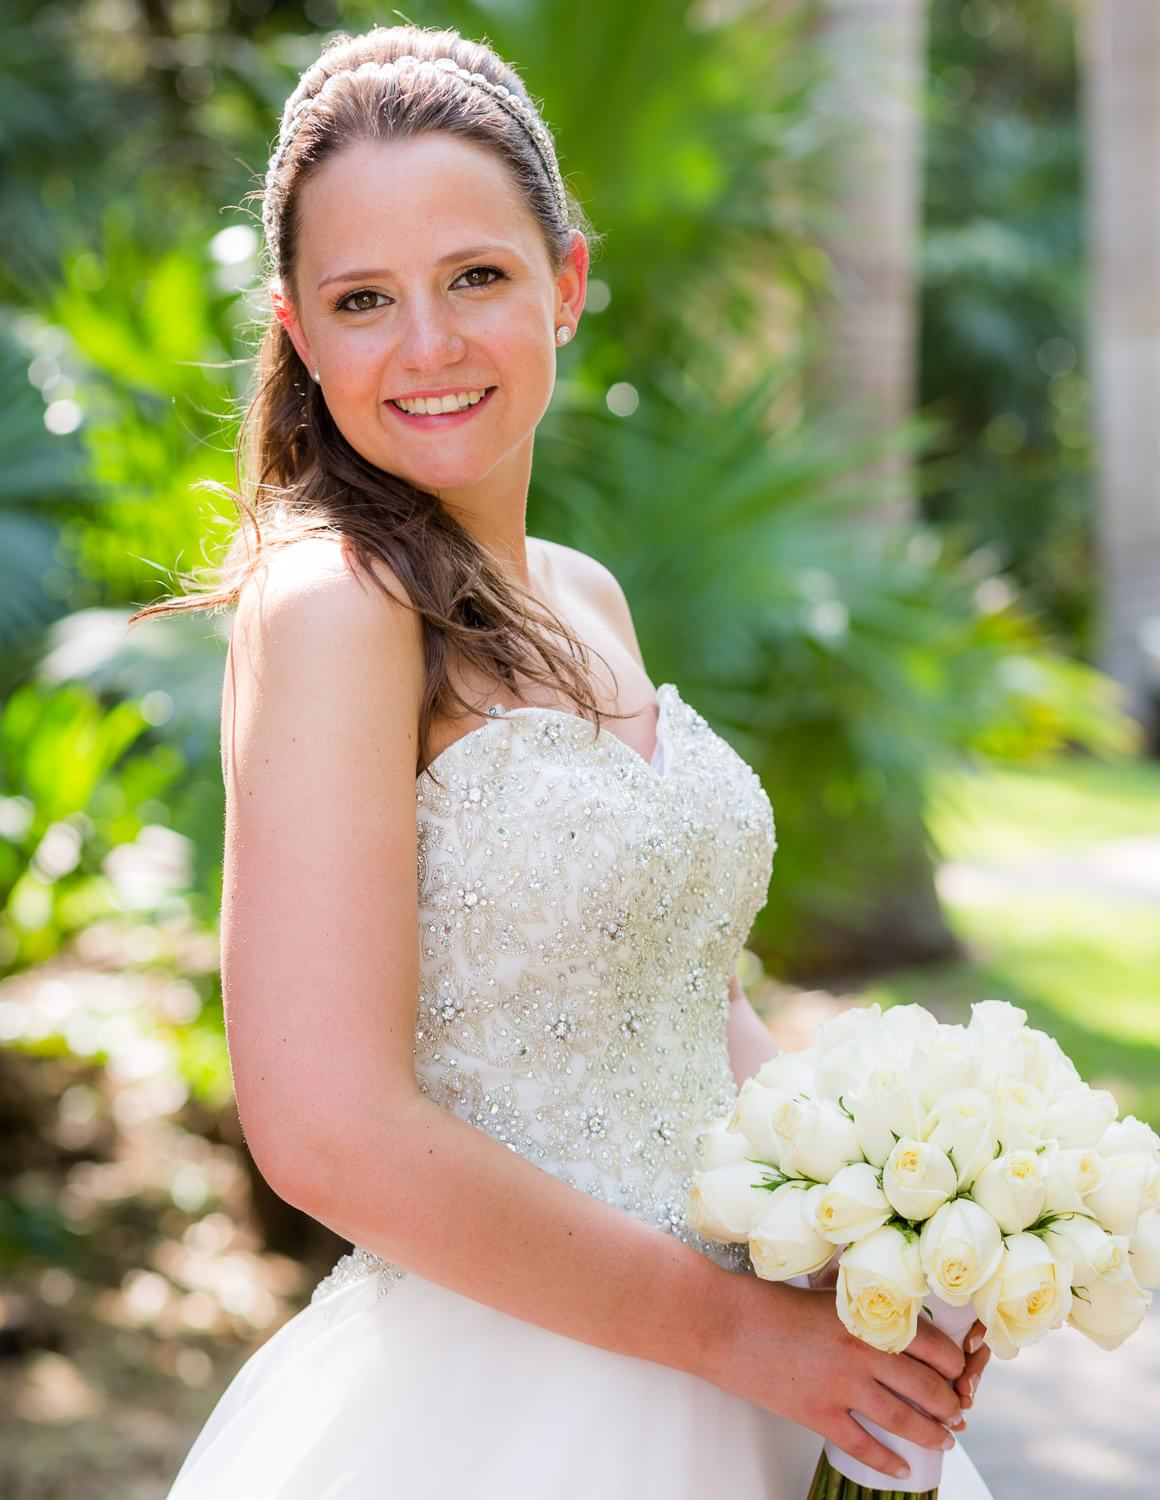 Portrait of bride at wedding